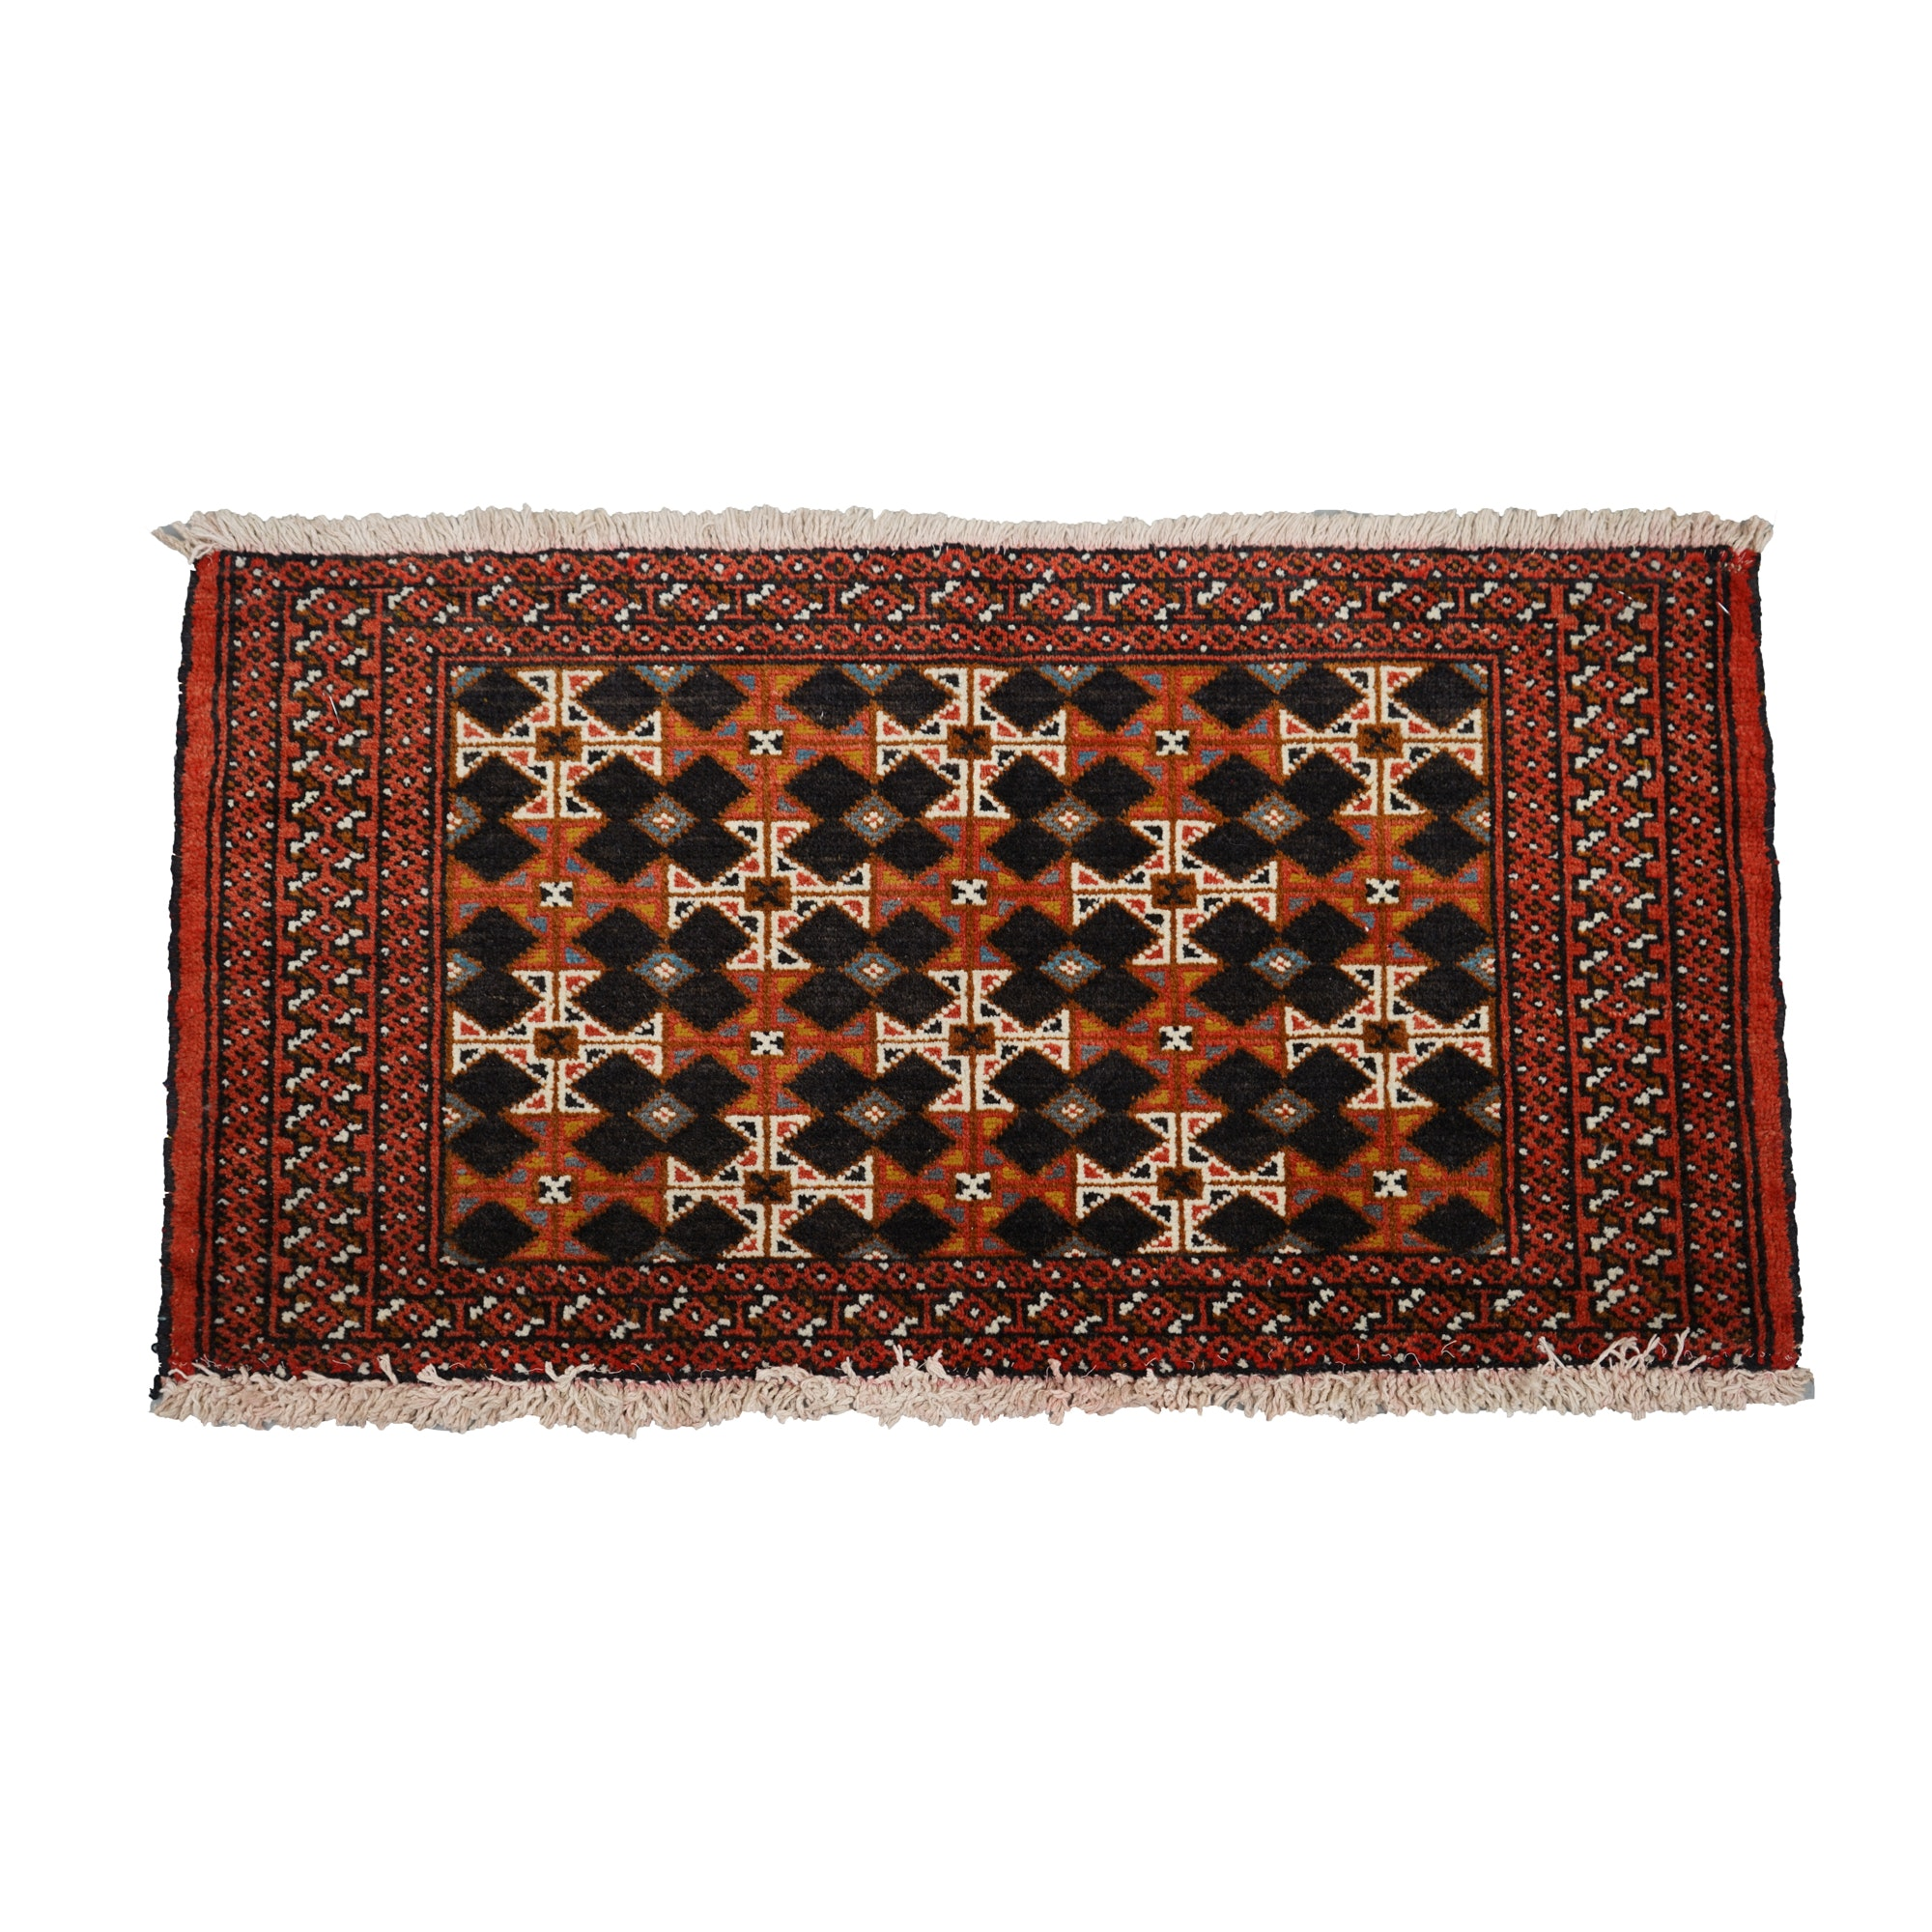 Hand-Knotted Turkmen-Inspired Wool Accent Rug